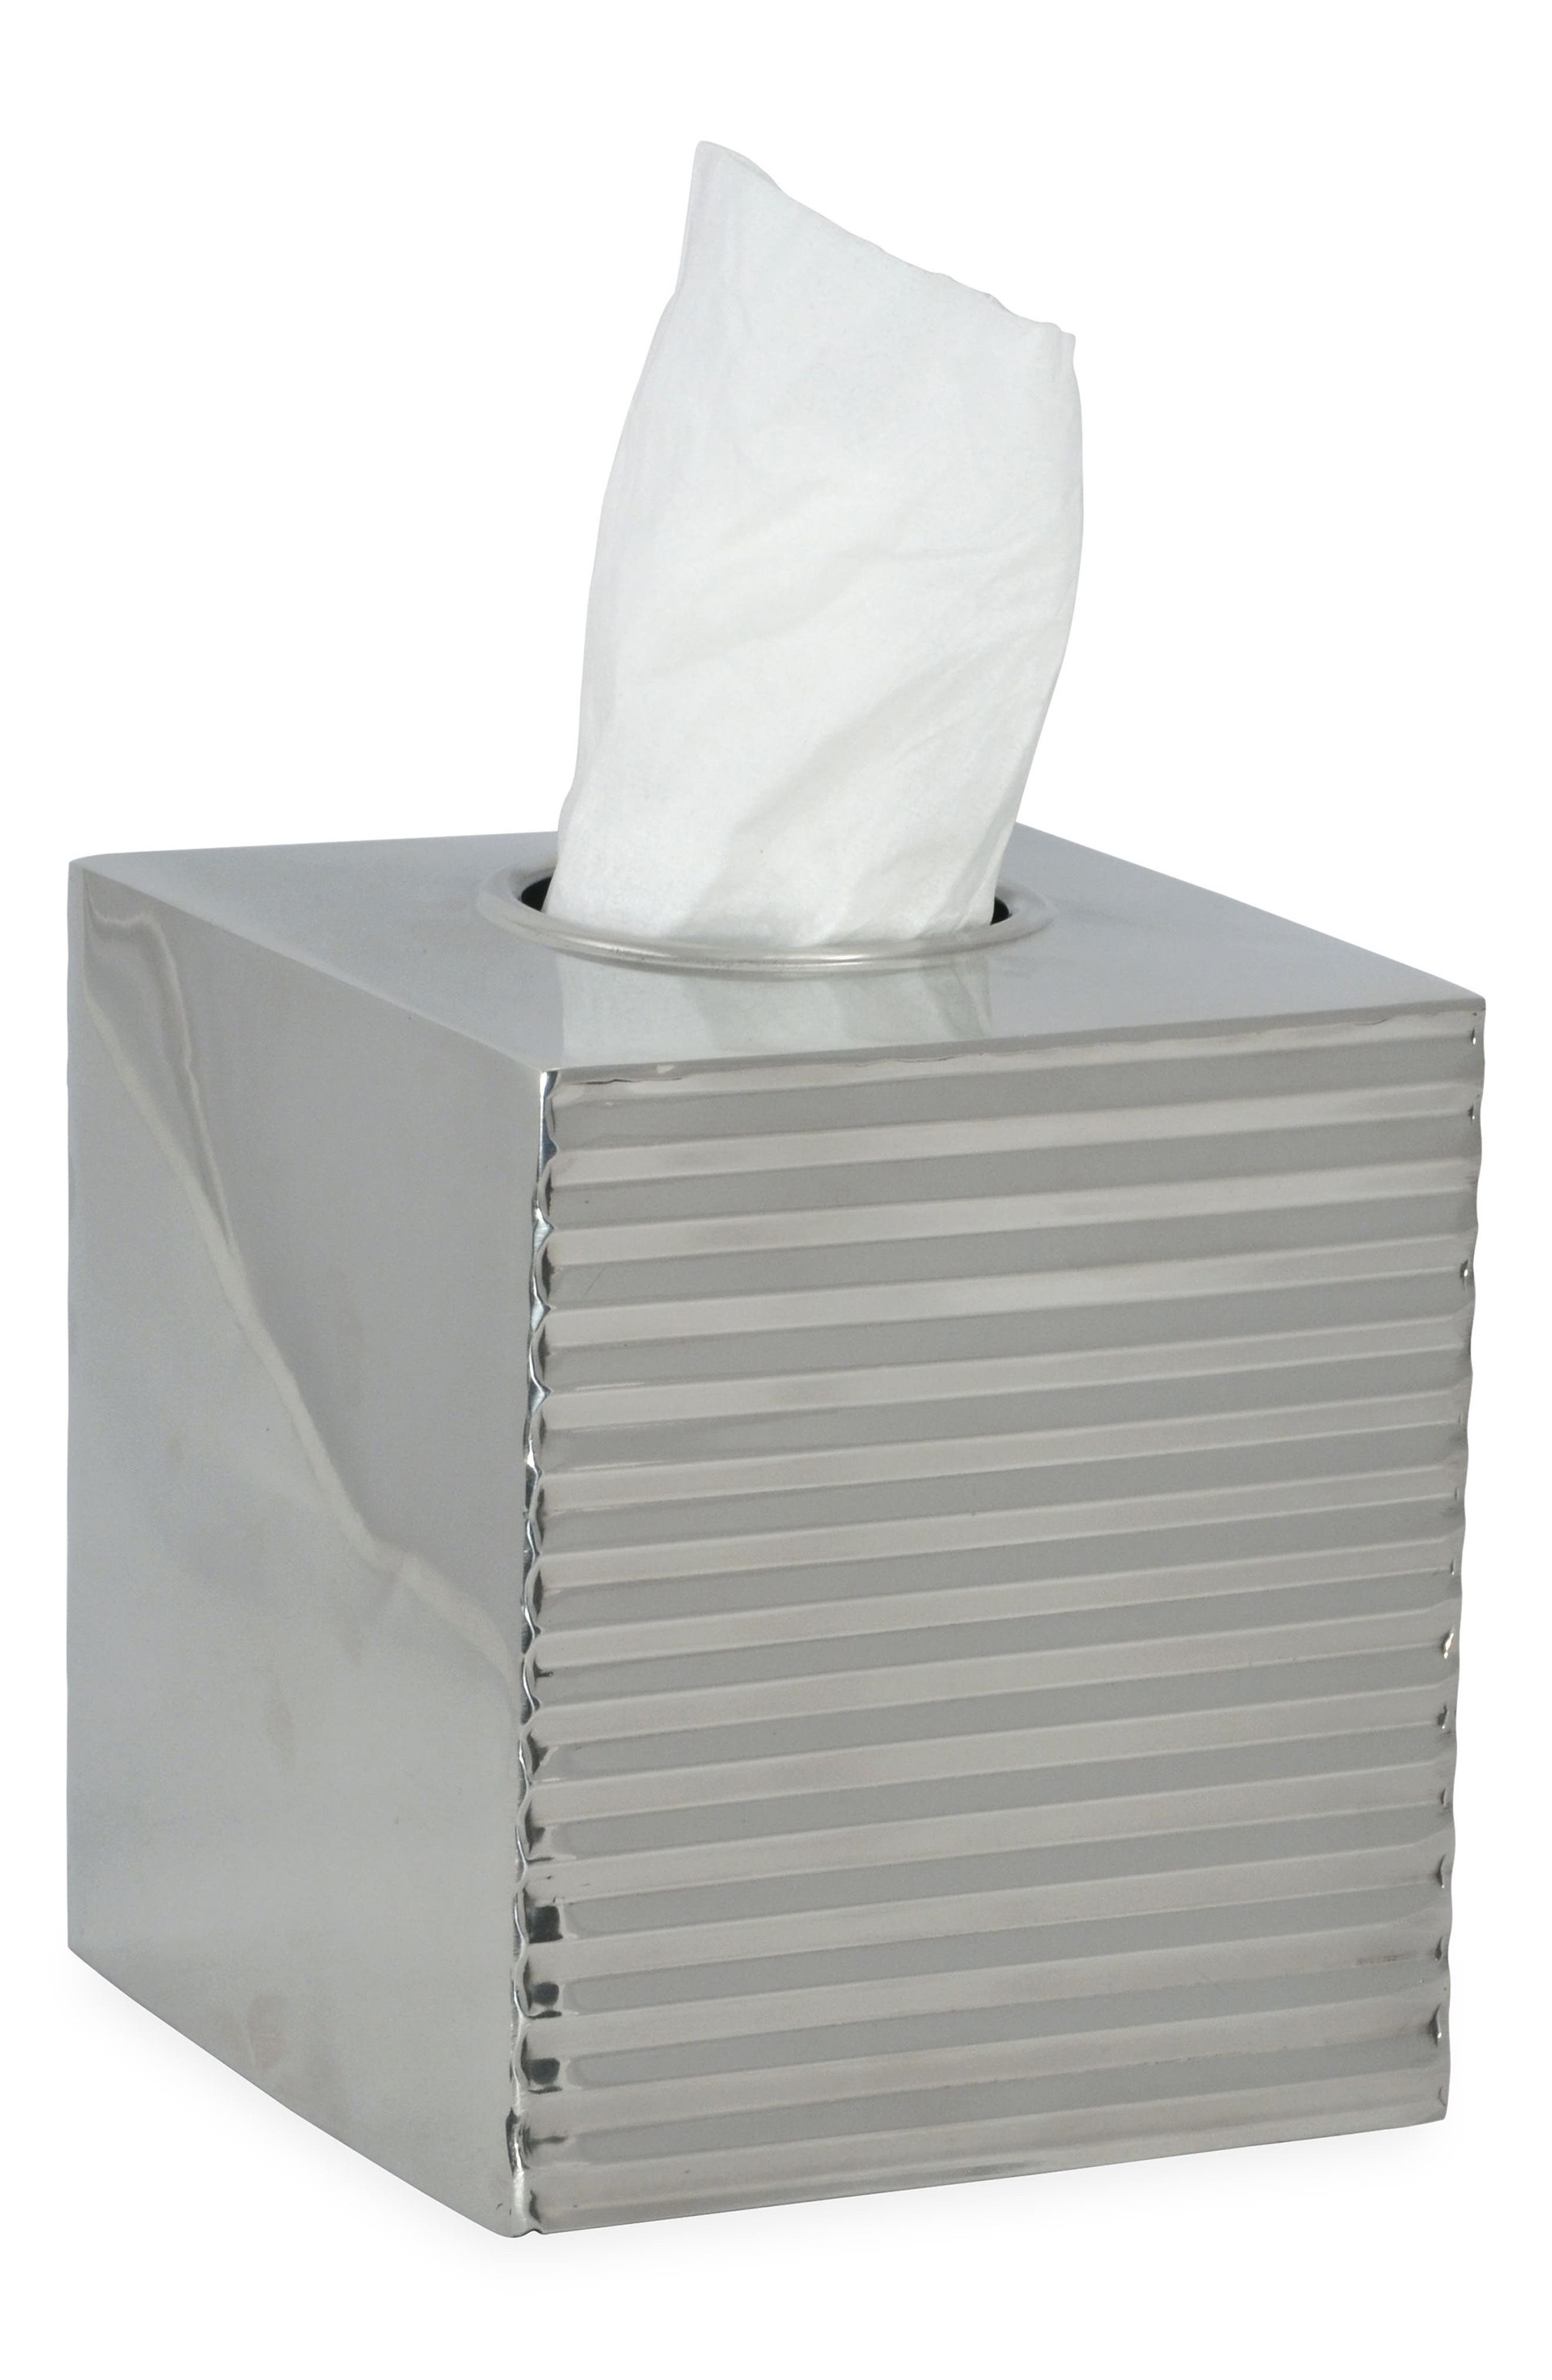 Corrugated Tissue Box Cover,                             Main thumbnail 1, color,                             Silver